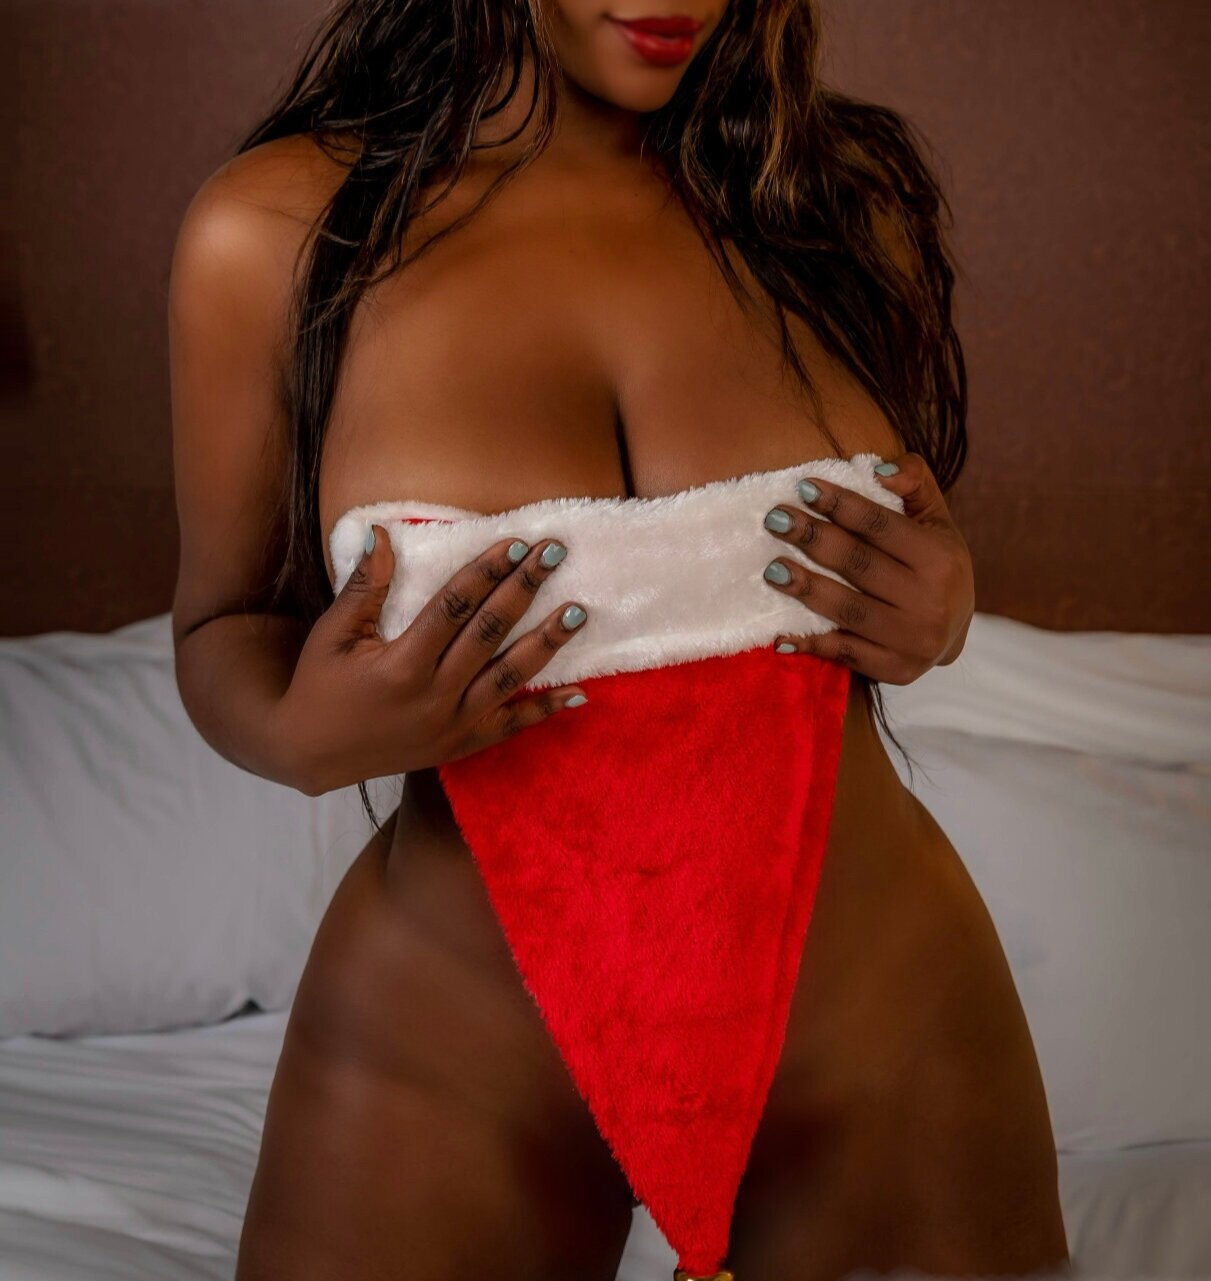 Escorts winthrop wa ebony escort pussy the olive seed